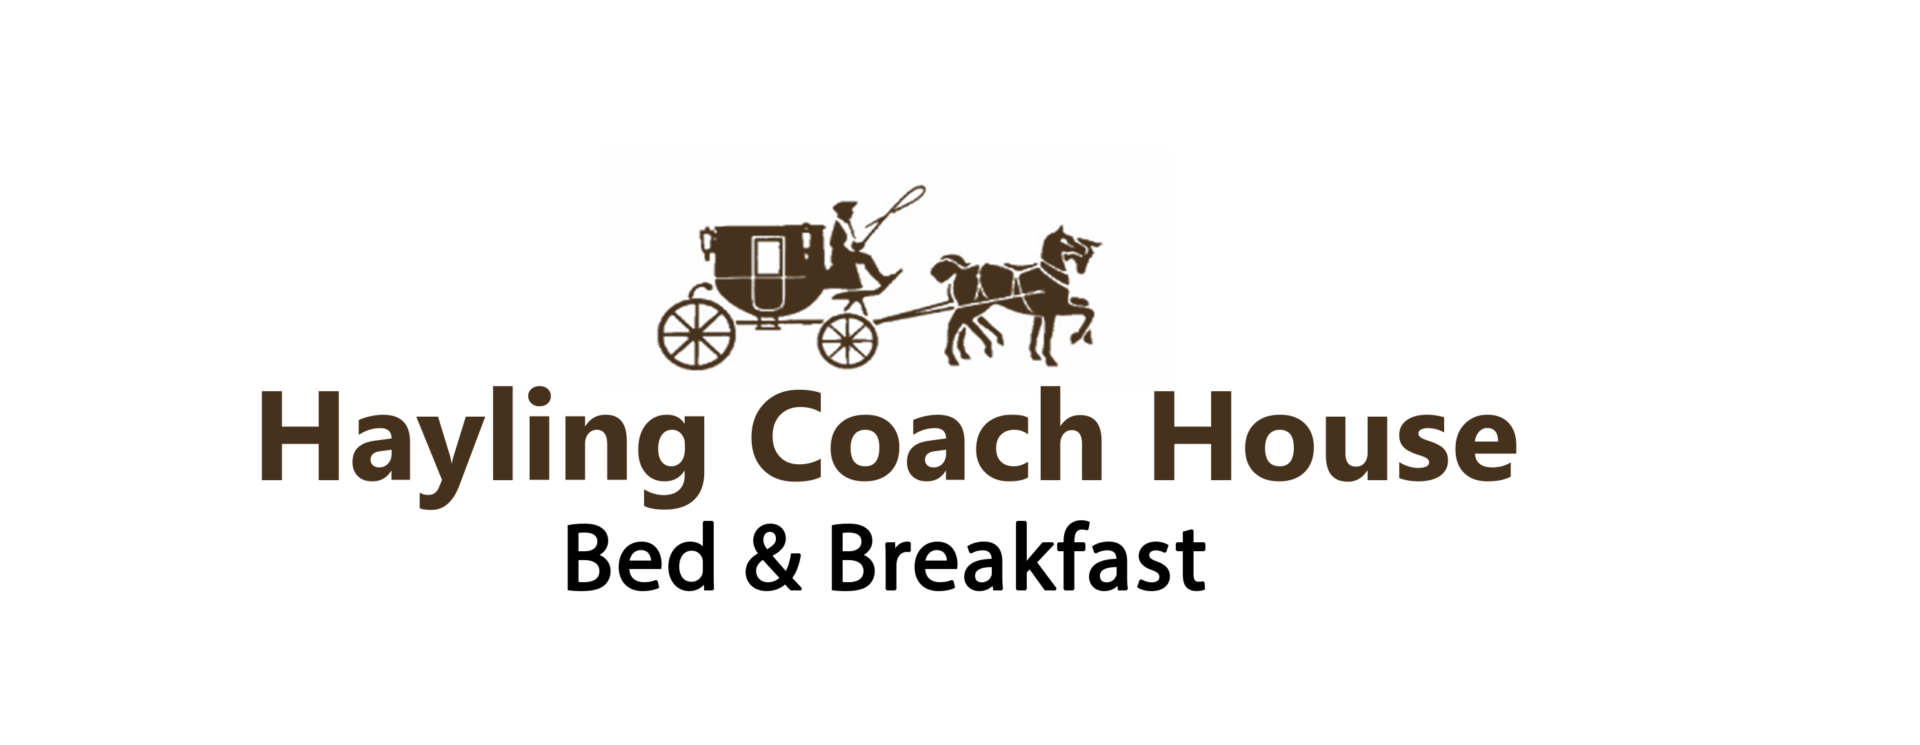 Hayling Coach House